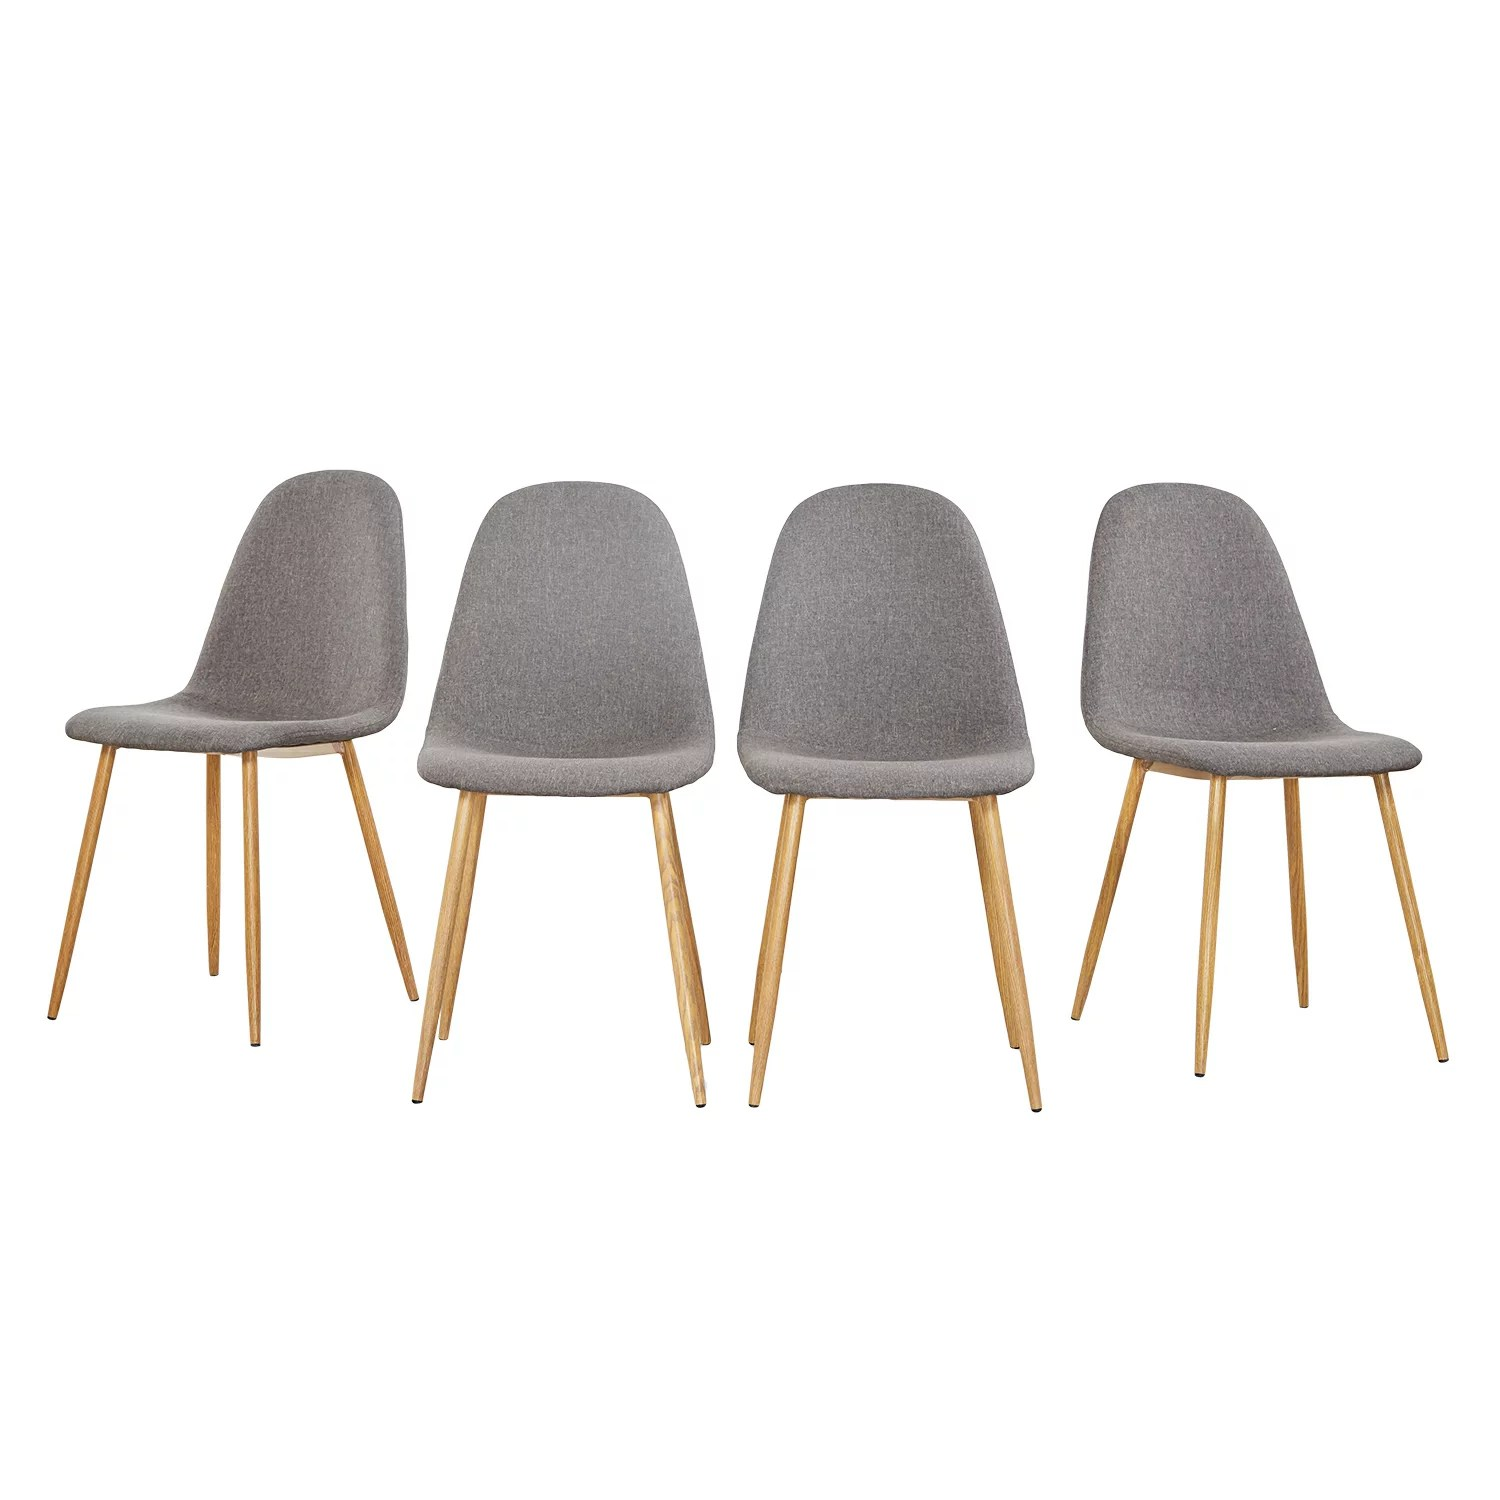 Set Of 4 Kitchen Chairs Mcombo Dining Side Chairs Set Of 4 Dining Table Round Clear Glass Table For Kitchen Dining Room